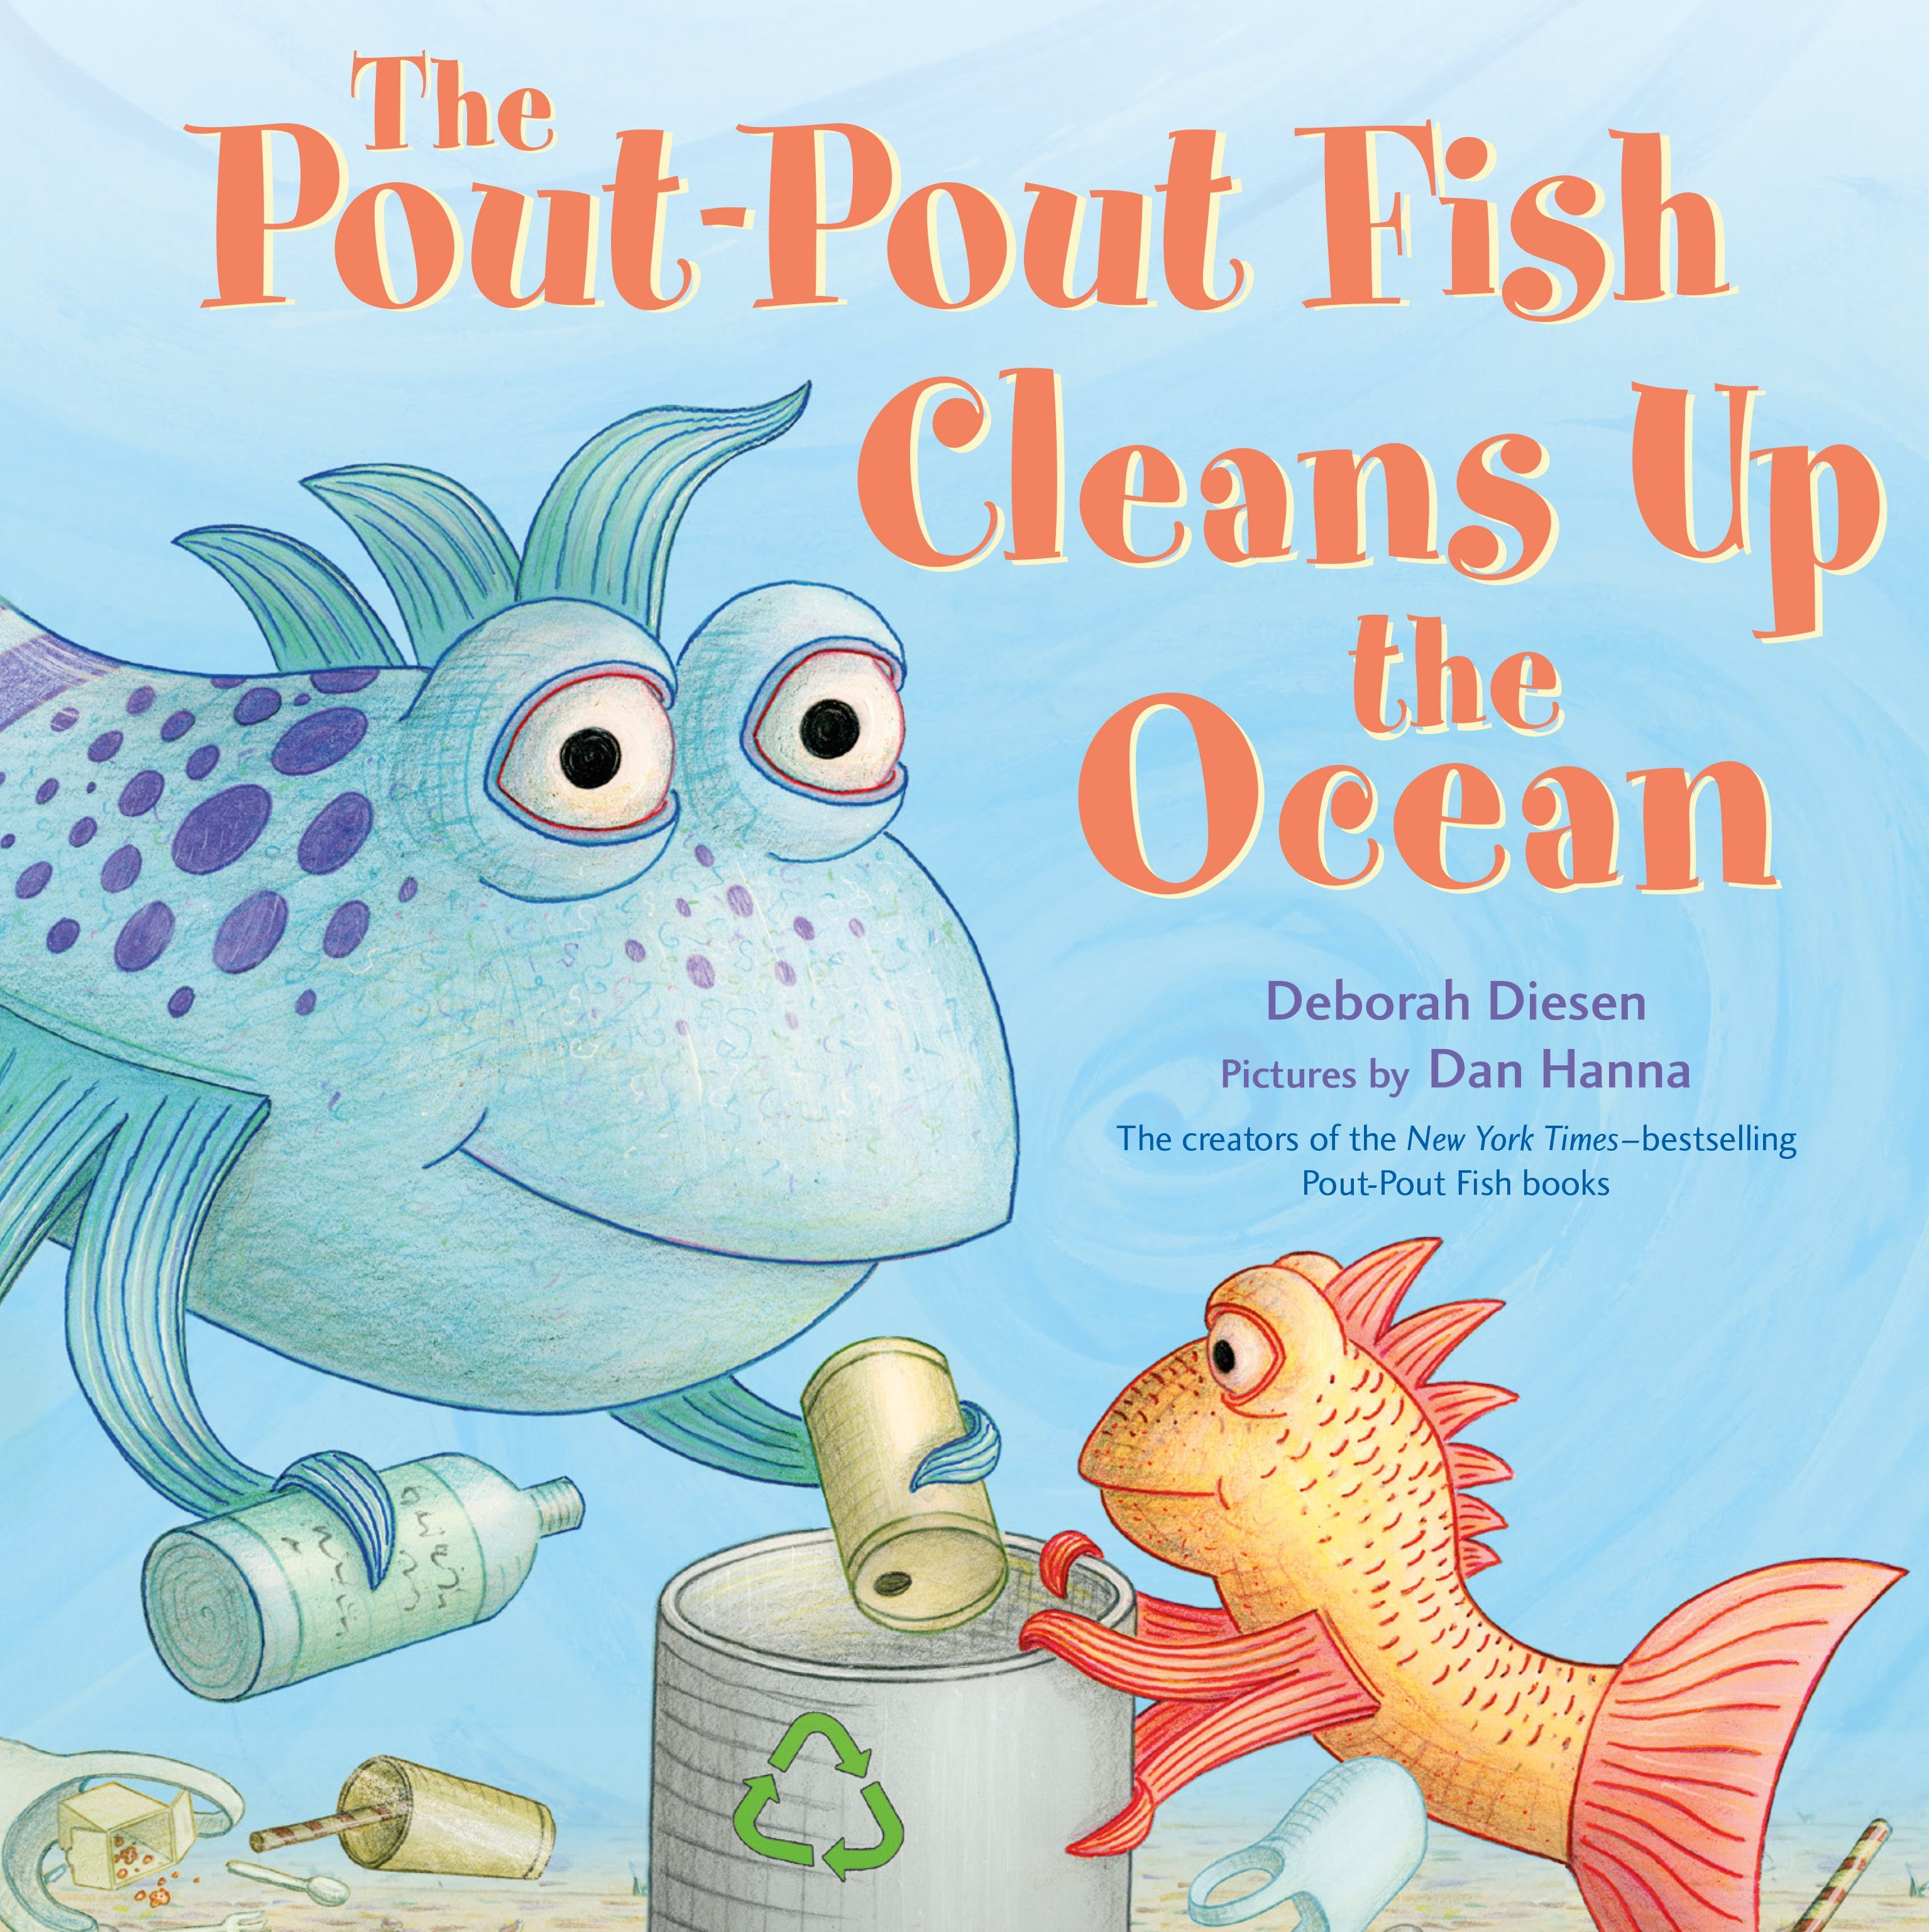 Image of The Pout-Pout Fish Cleans Up the Ocean